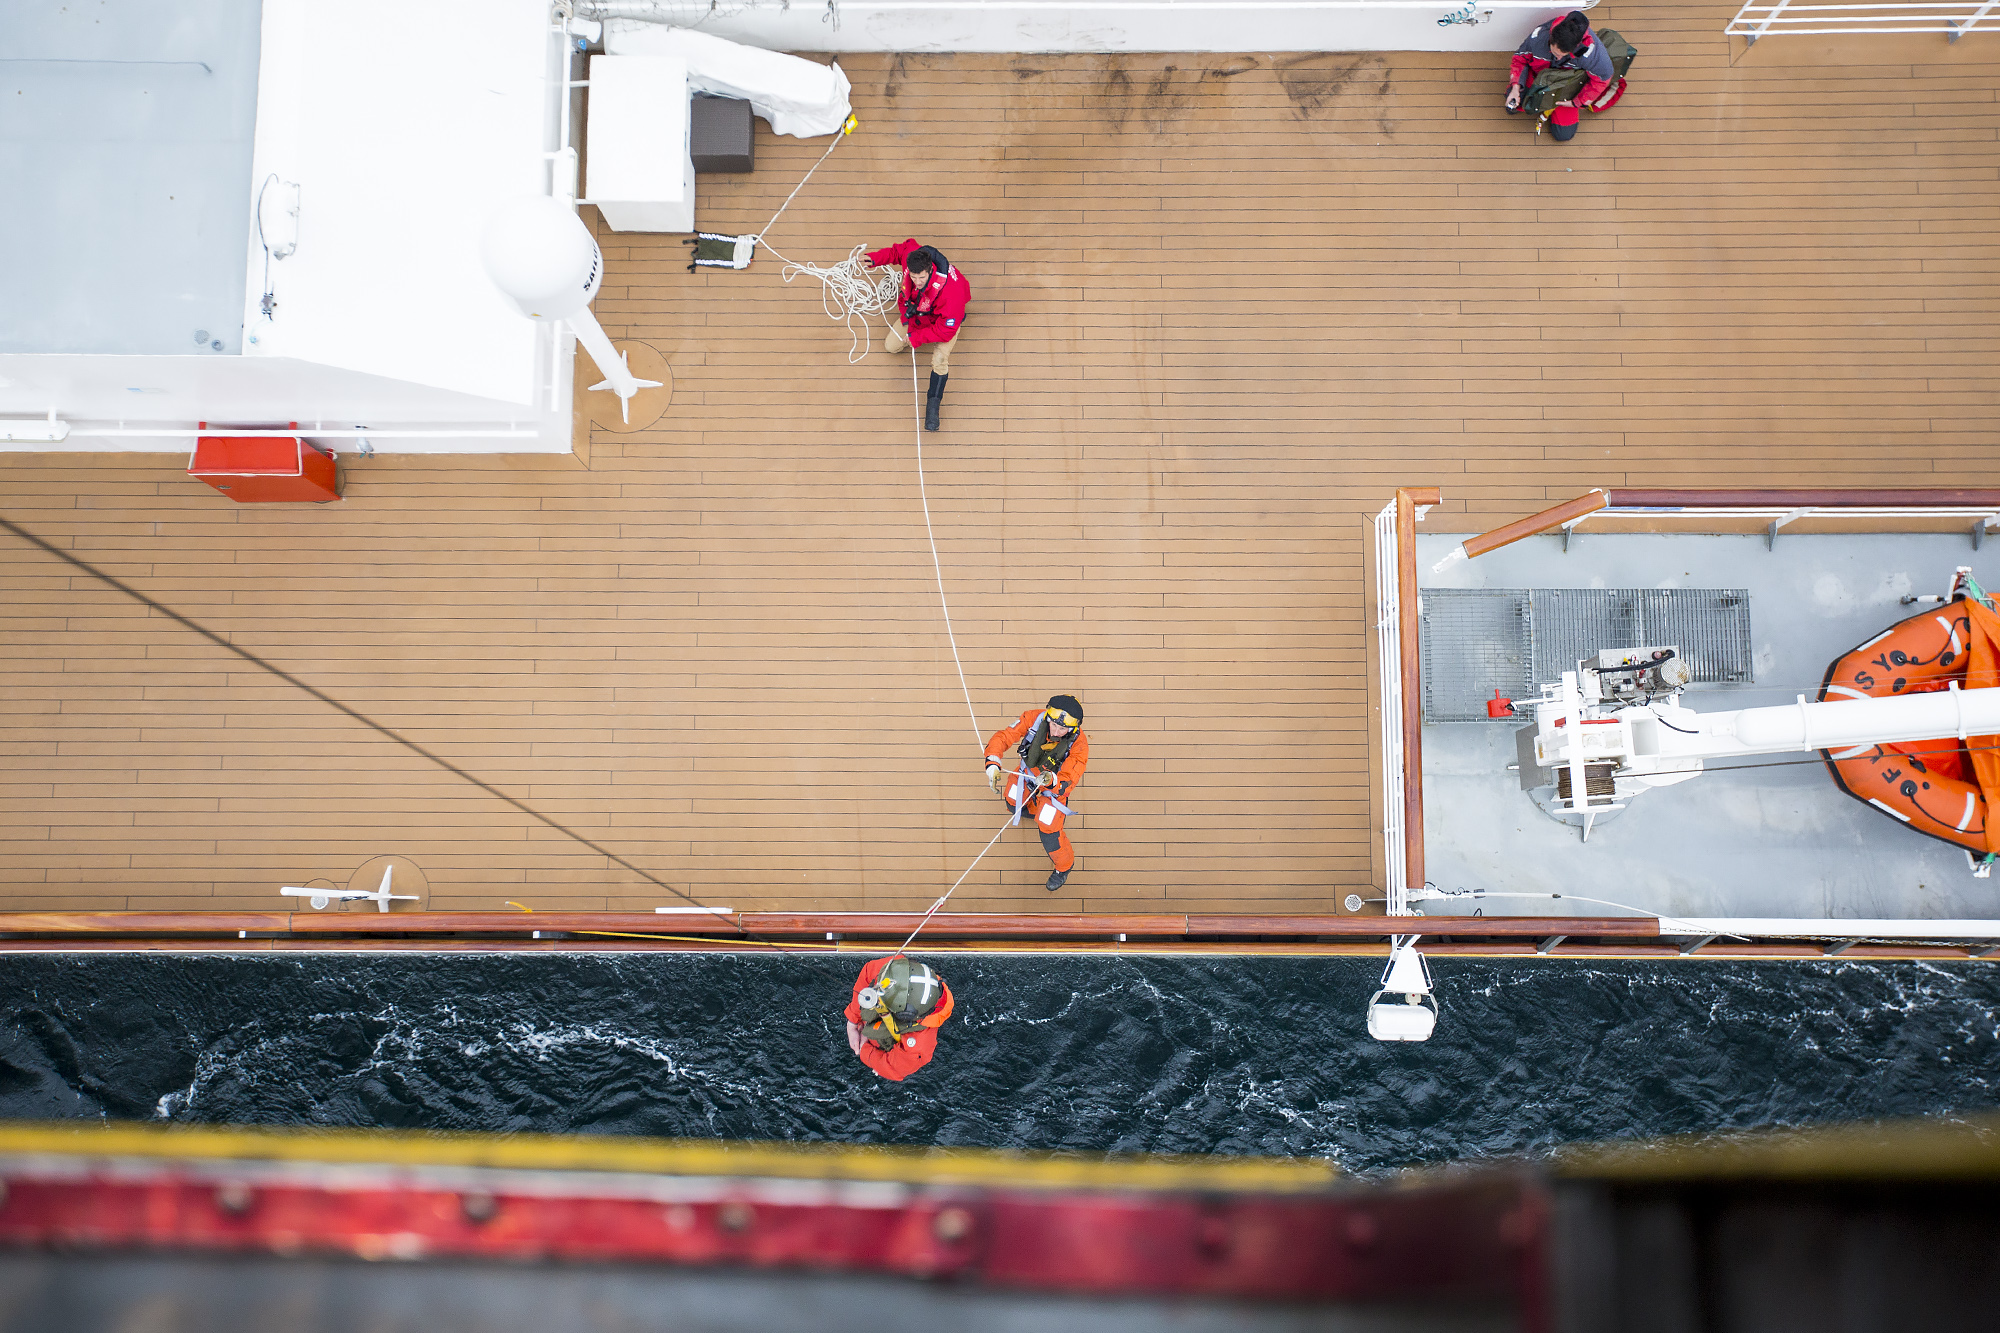 RAF Search & Rescue crew boarding La Boreal Cruise Ship after a fire broke out. Crown Copyright.